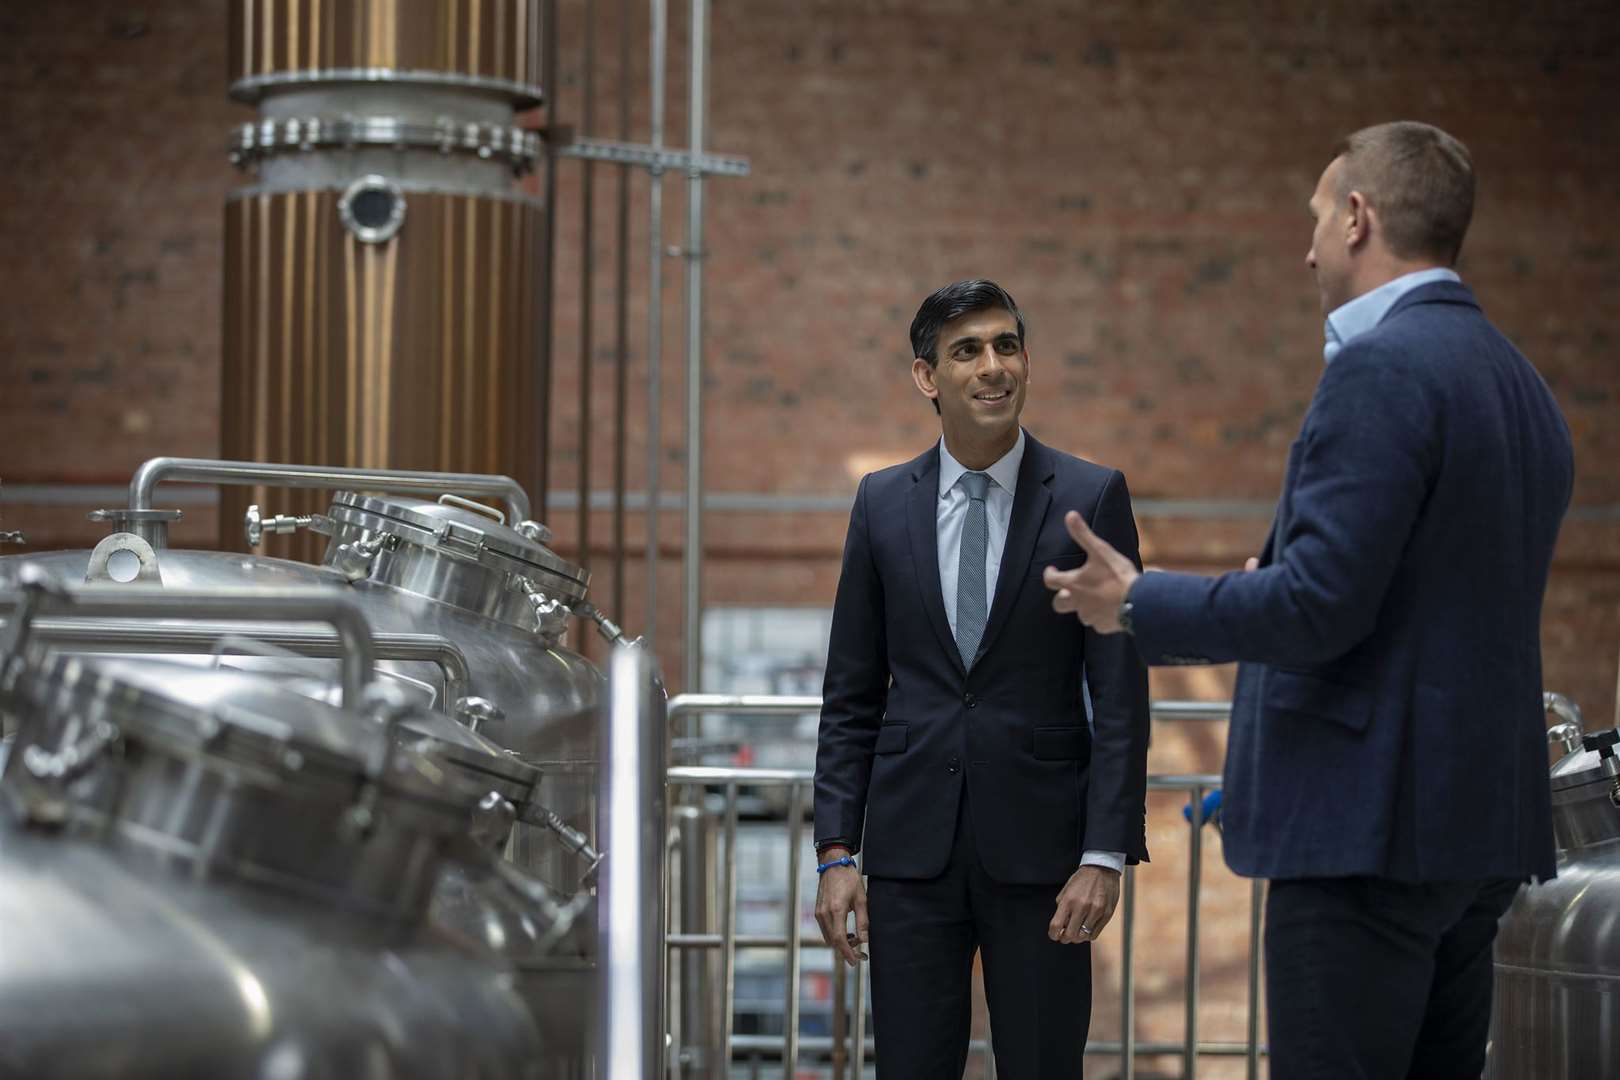 Chancellor Rishi Sunak announced a string of financial support measures for businesses during the health crisis. Picture: HM Treasury/Simon Walker